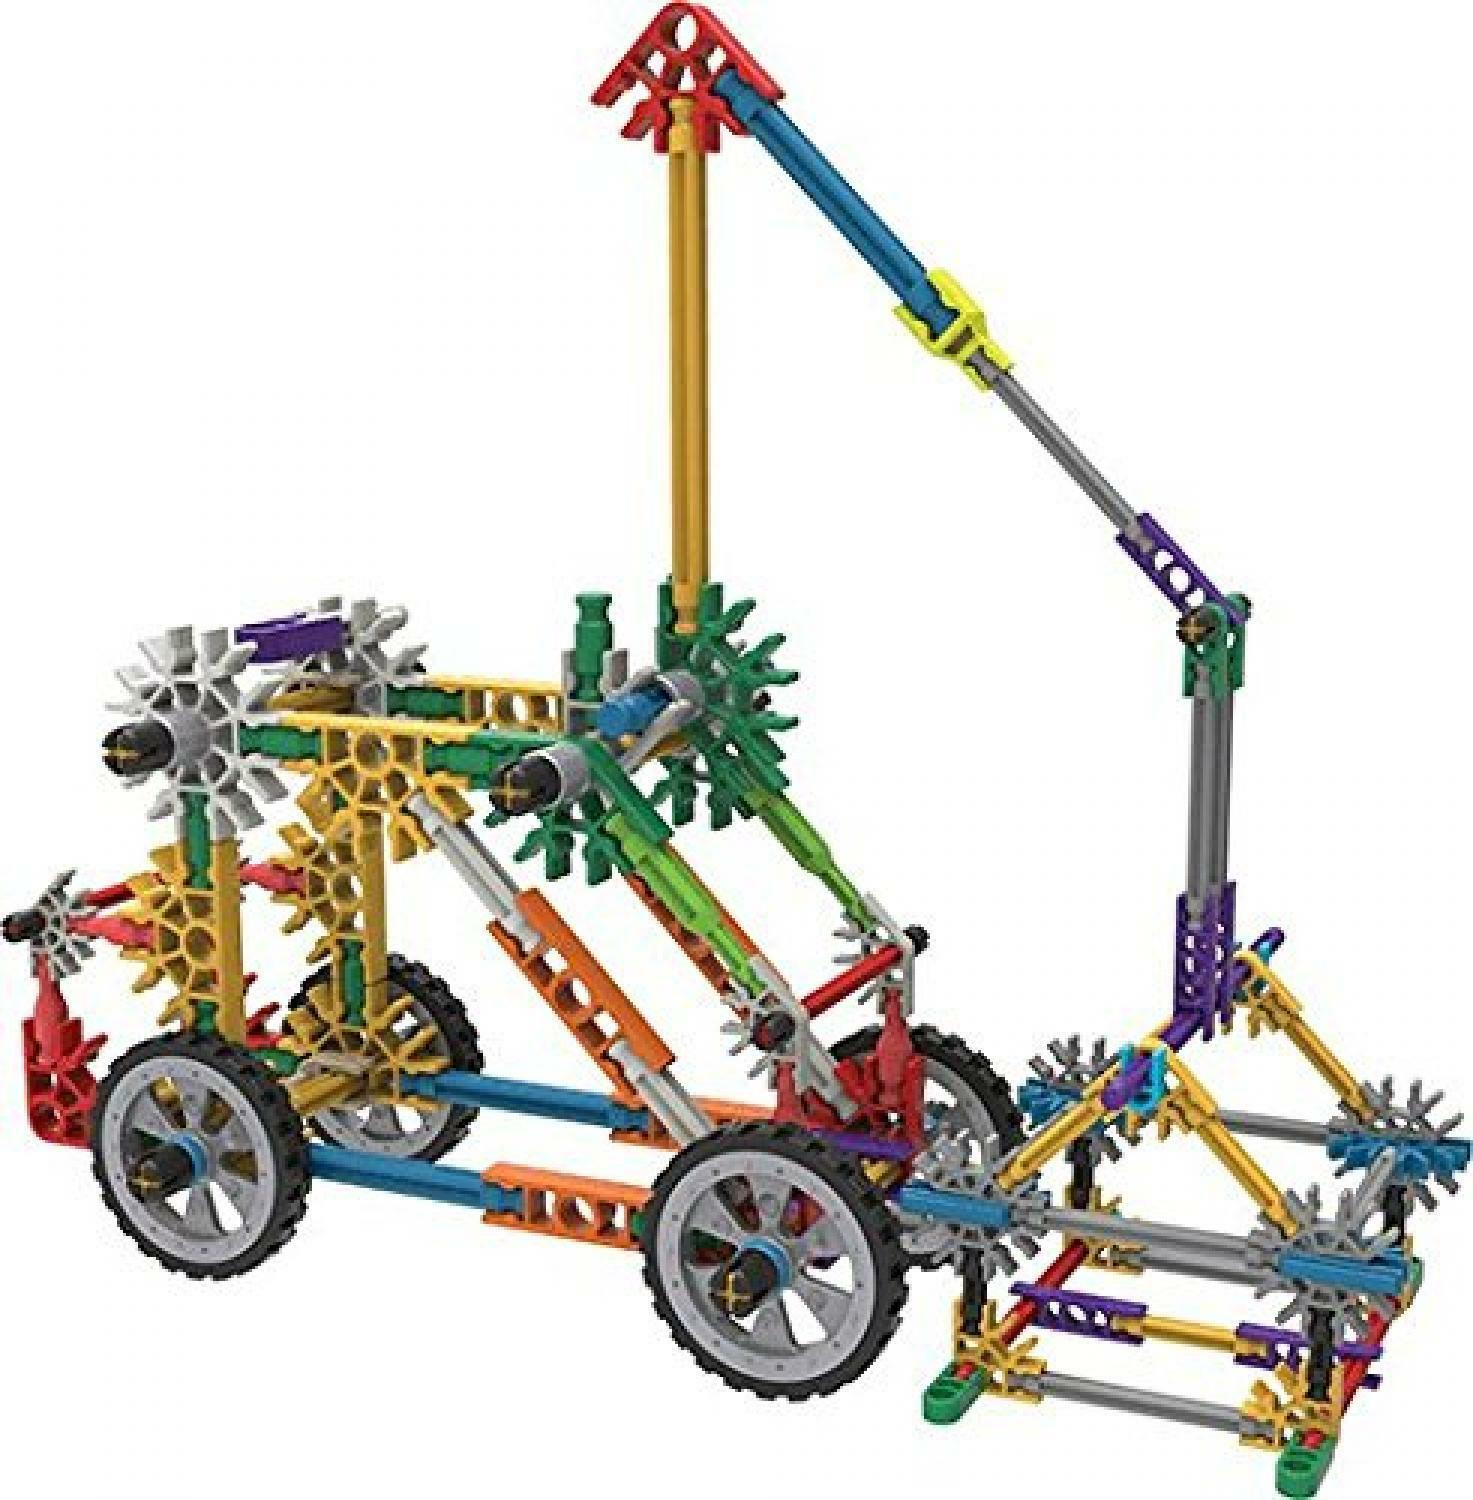 K'nex Creation Zone 50 Model Building Set 34366